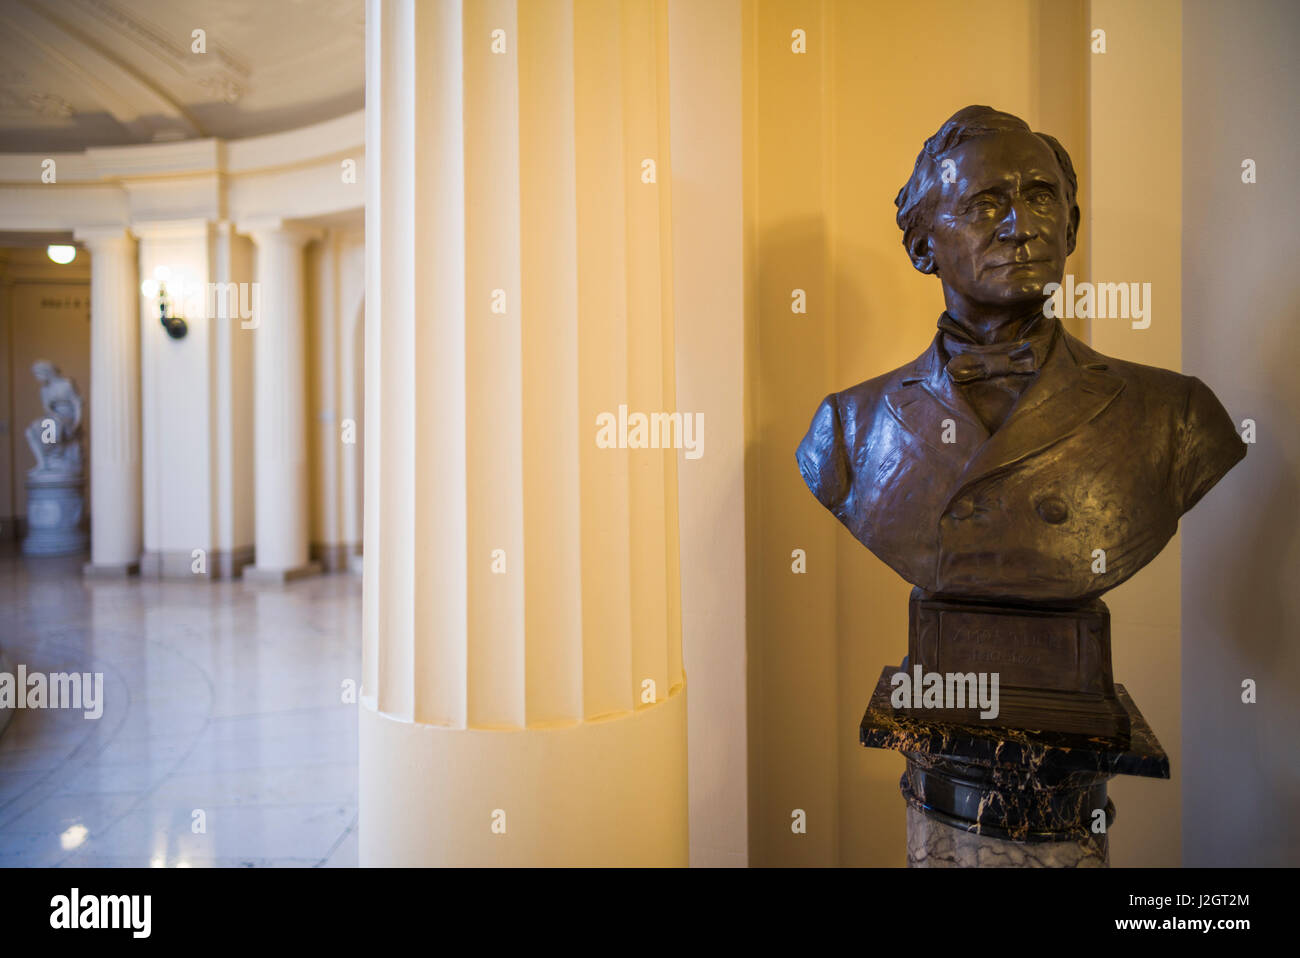 USA, New Hampshire, Concord, New Hampshire State Historical Society Museum, bust of Amos Tuck, founder of the US - Stock Image